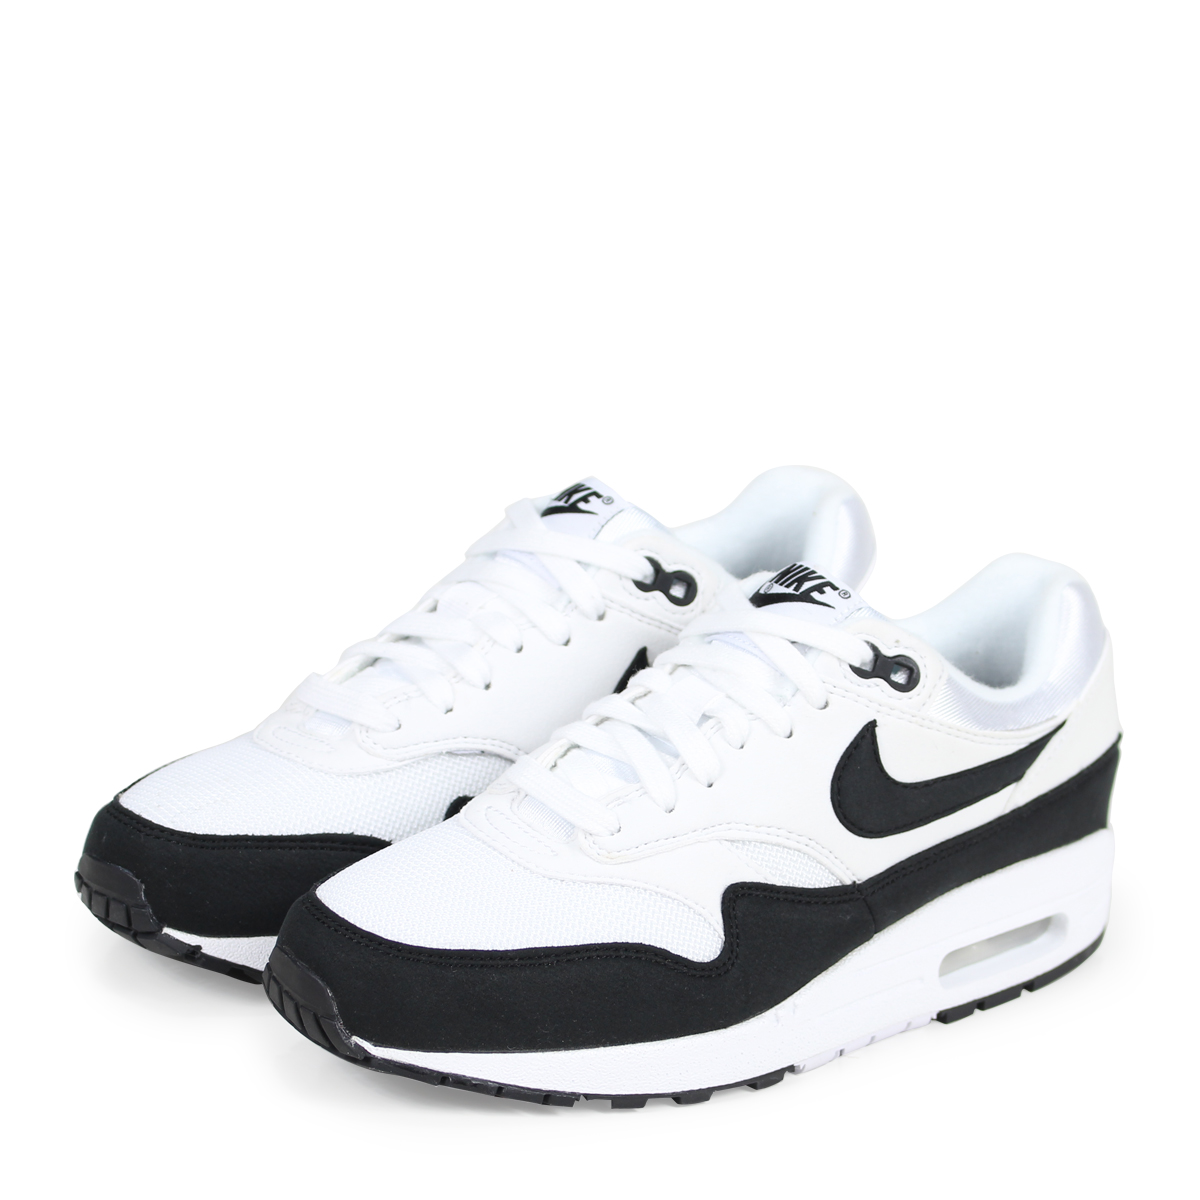 free shipping aeeb1 9e3f6 NIKE WMNS AIR MAX 1 Kie Ney AMAX 1 Lady s sneakers 319,986-109 white  load  planned Shinnyu load in reservation product 3 30 containing   183